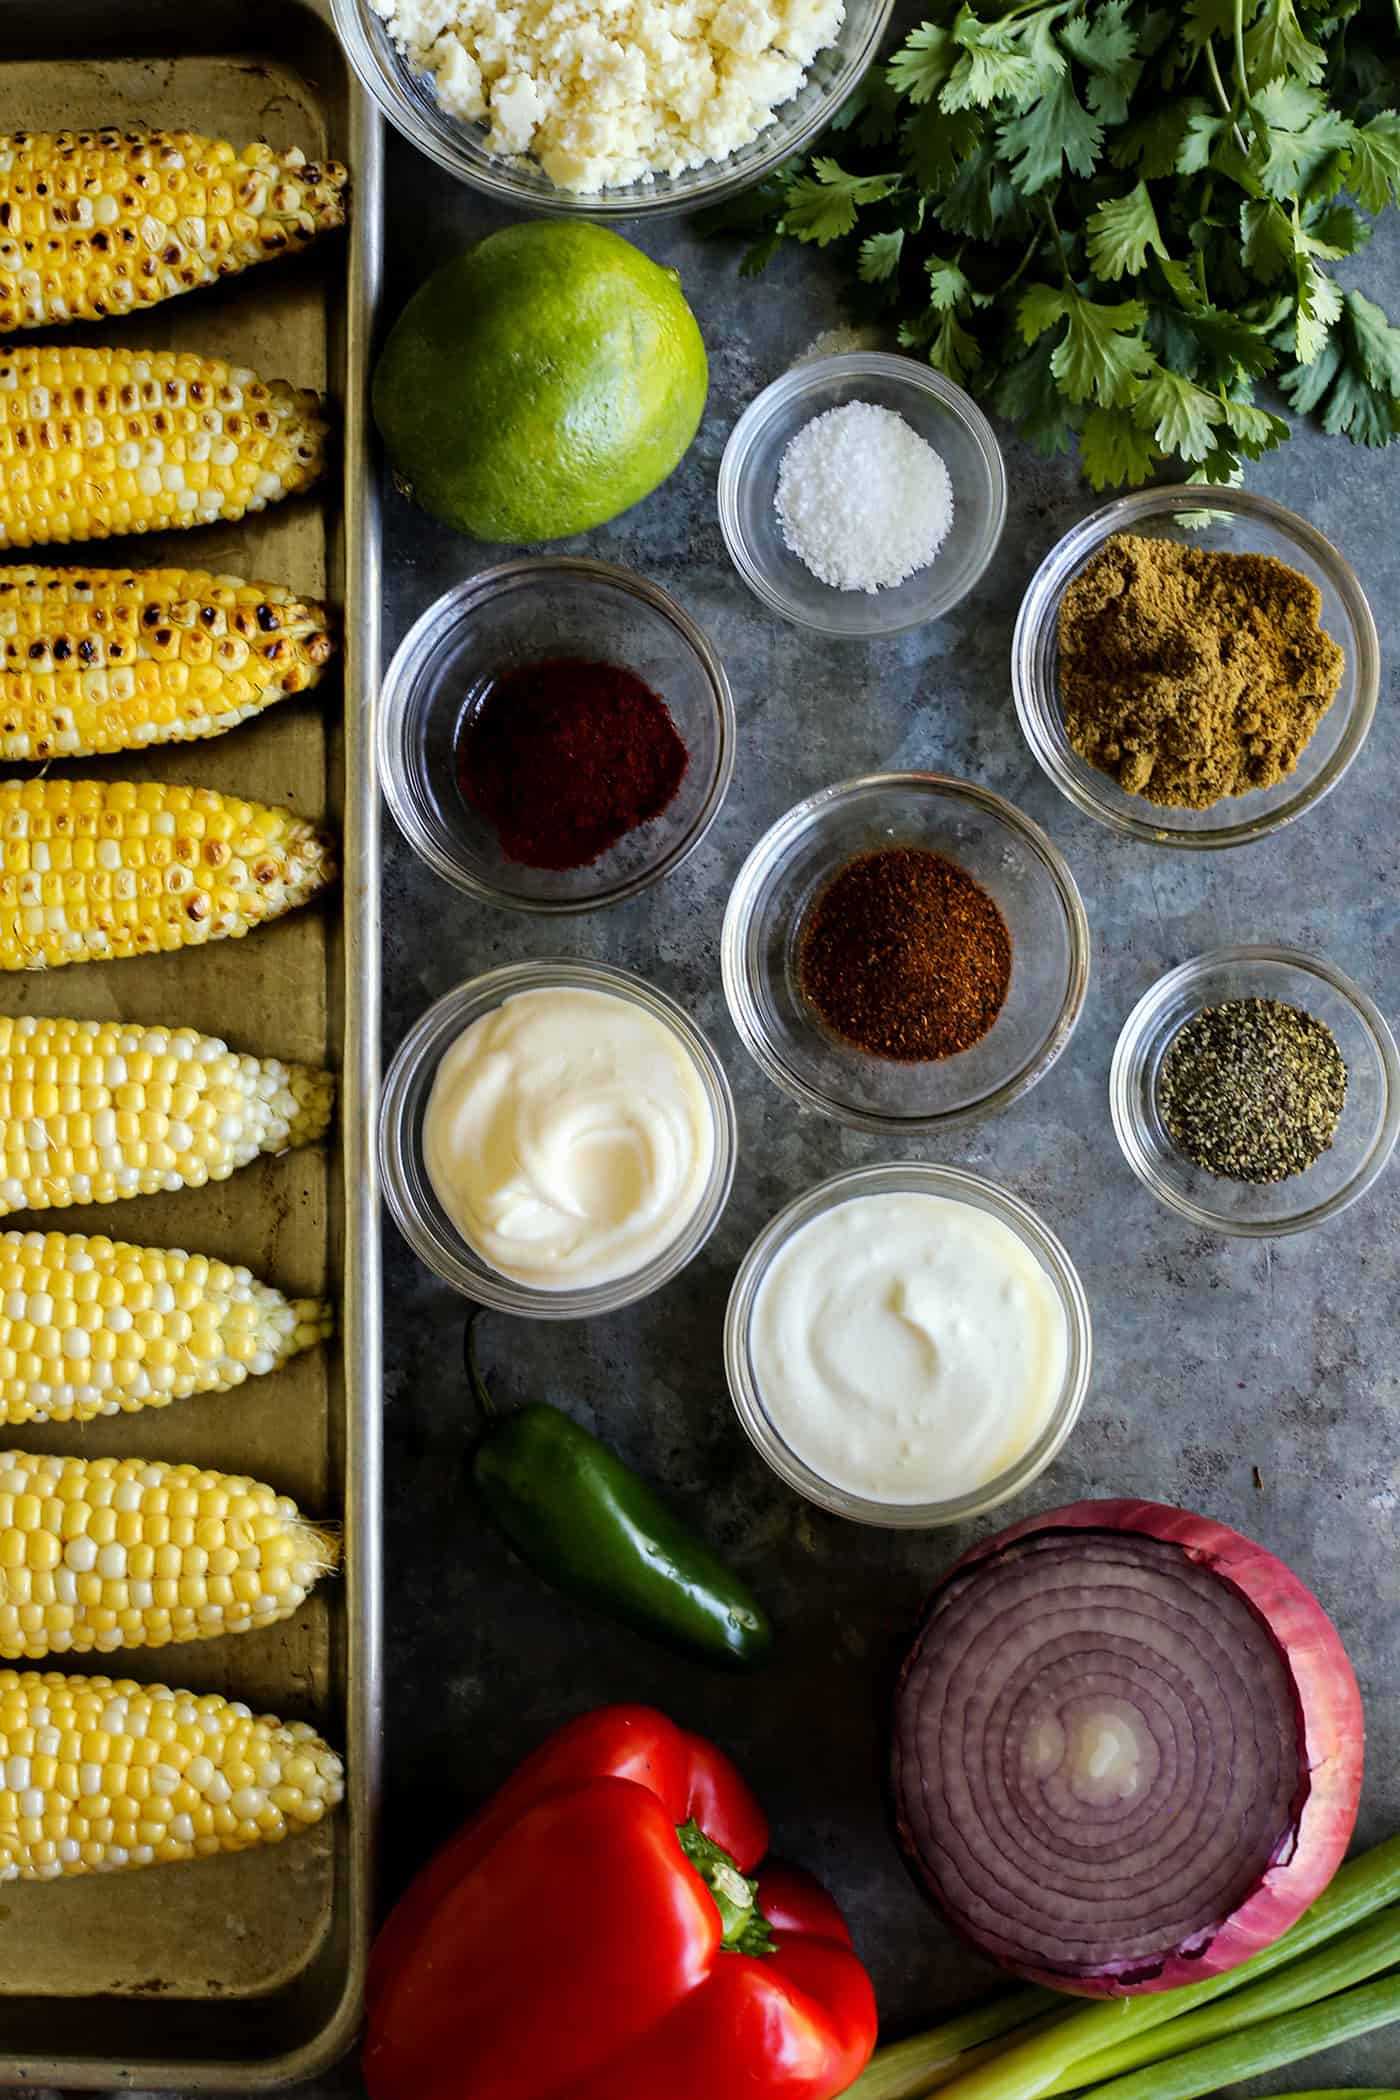 ingredients to make Mexican corn salad, all in separate containers